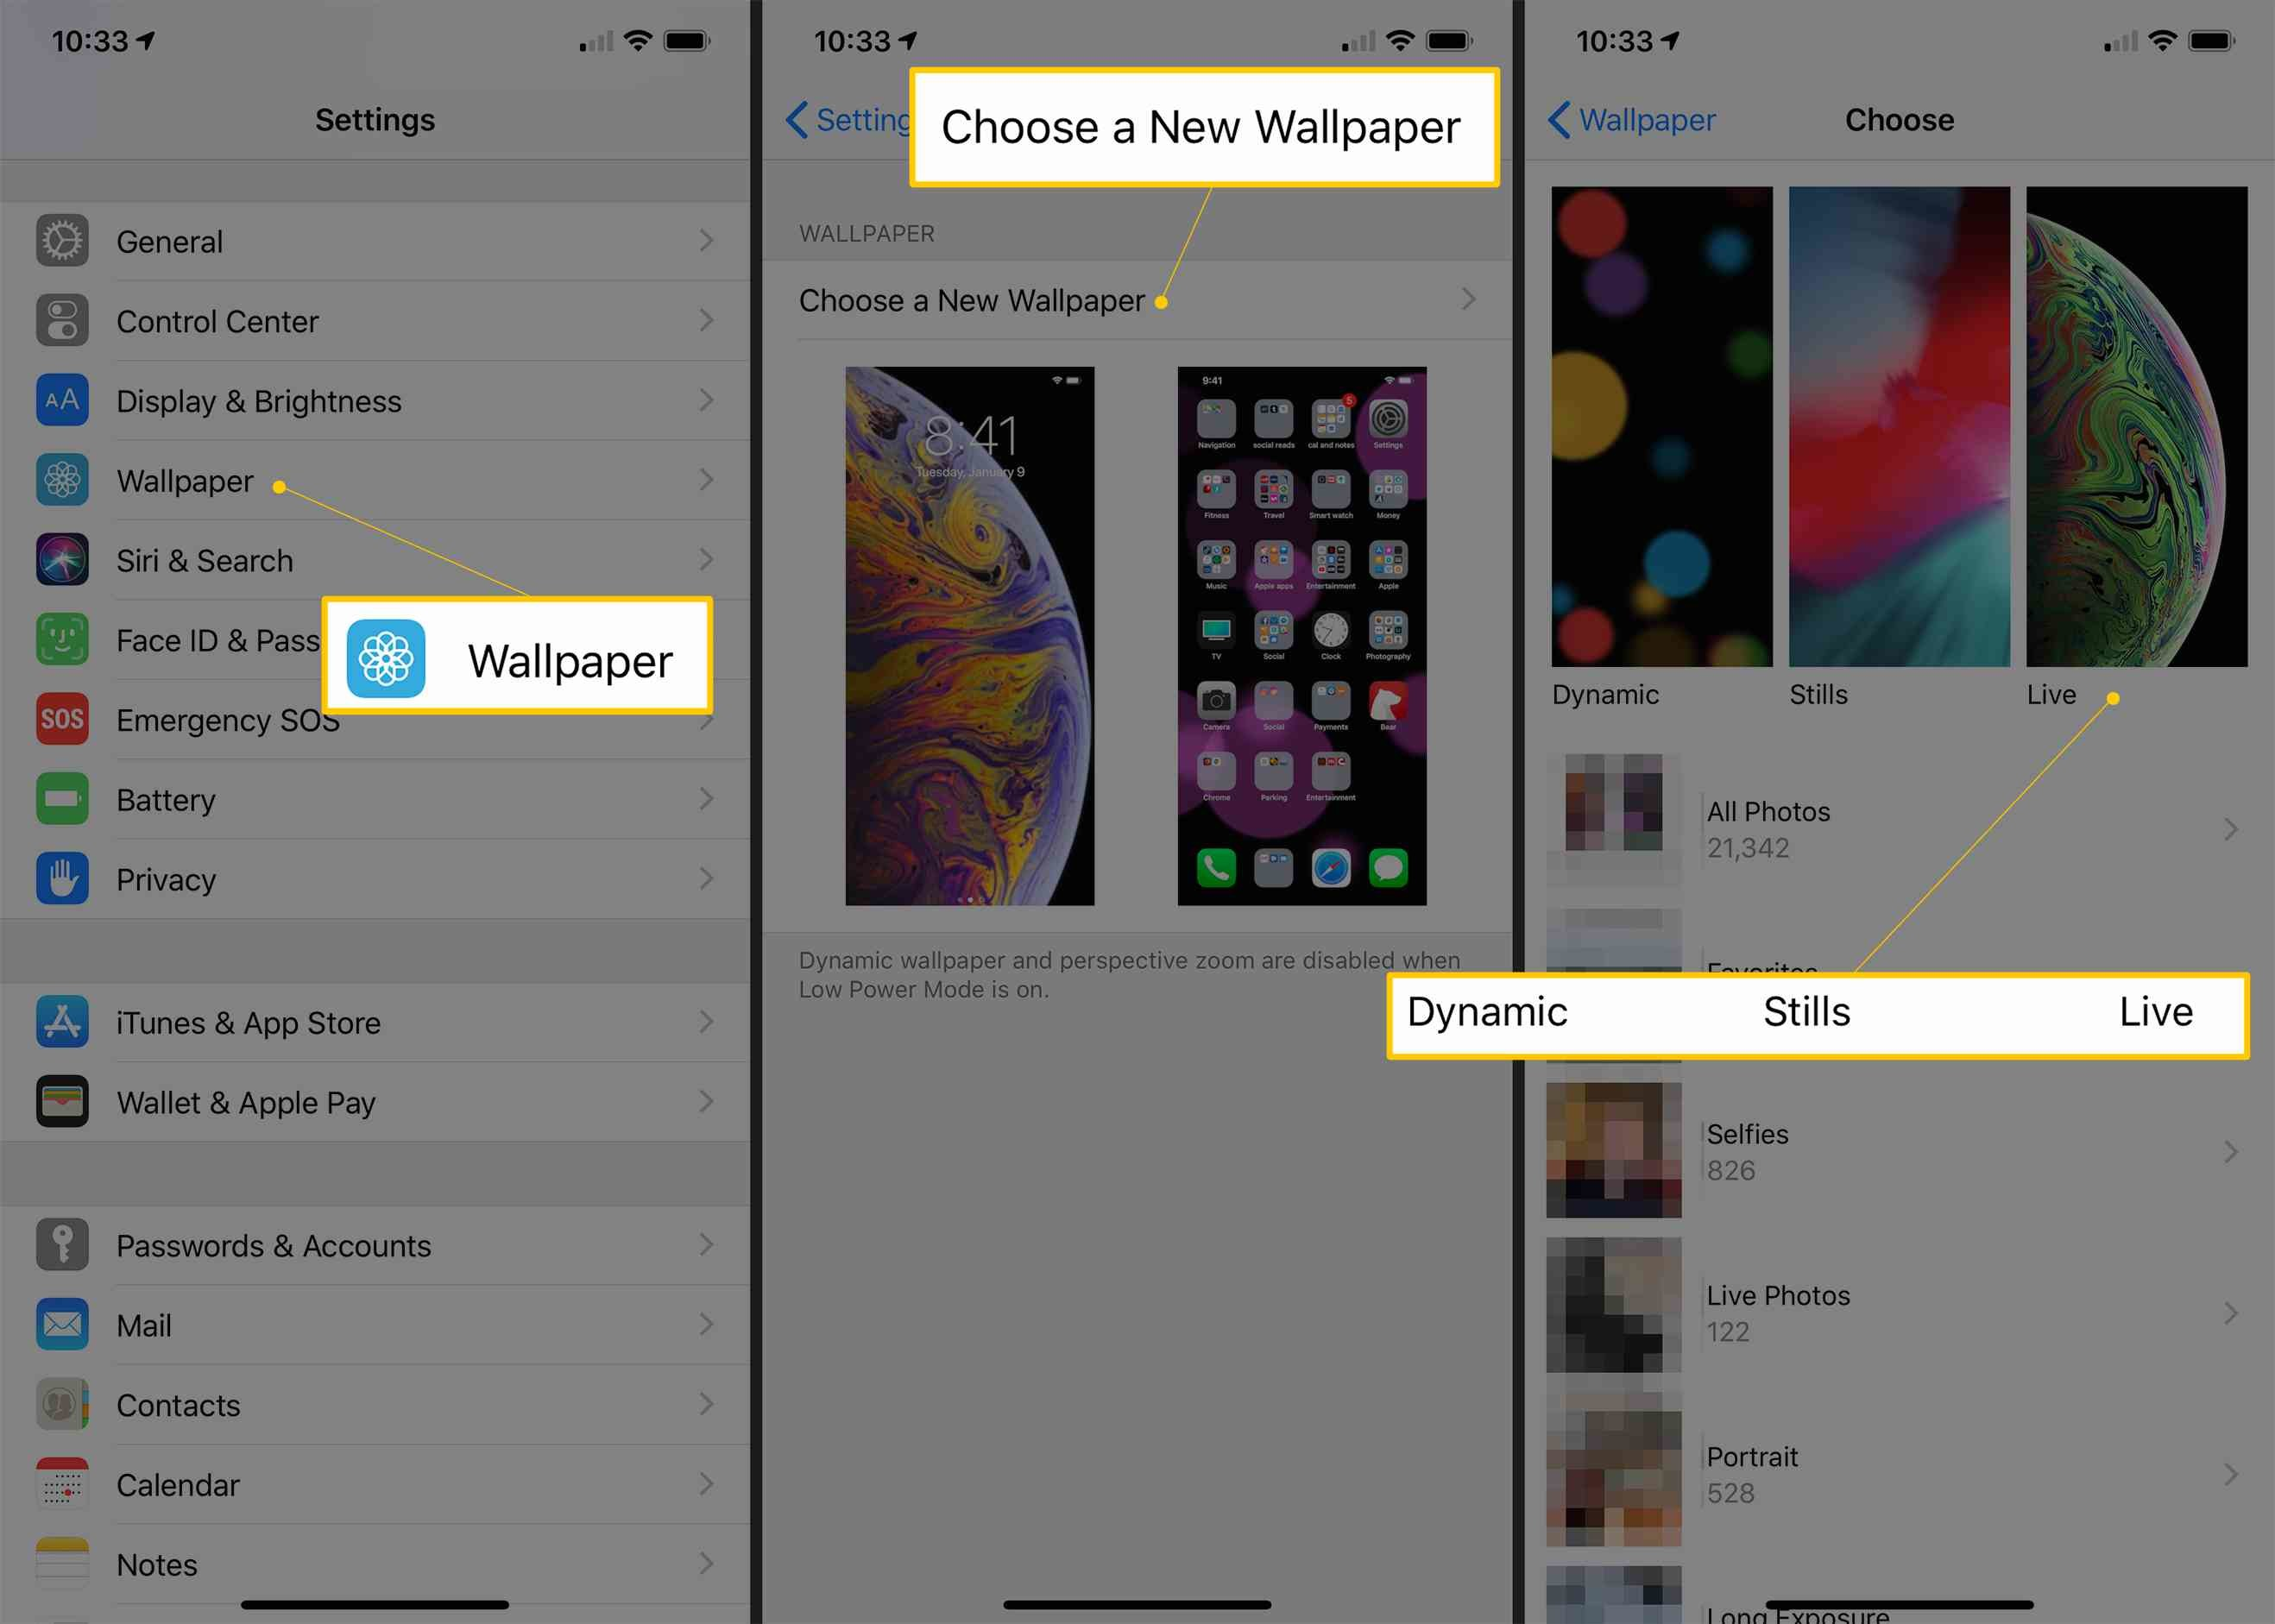 How To Set Live Wallpapers And Dynamic Wallpapers On - Live Photos 壁紙 設定 - HD Wallpaper